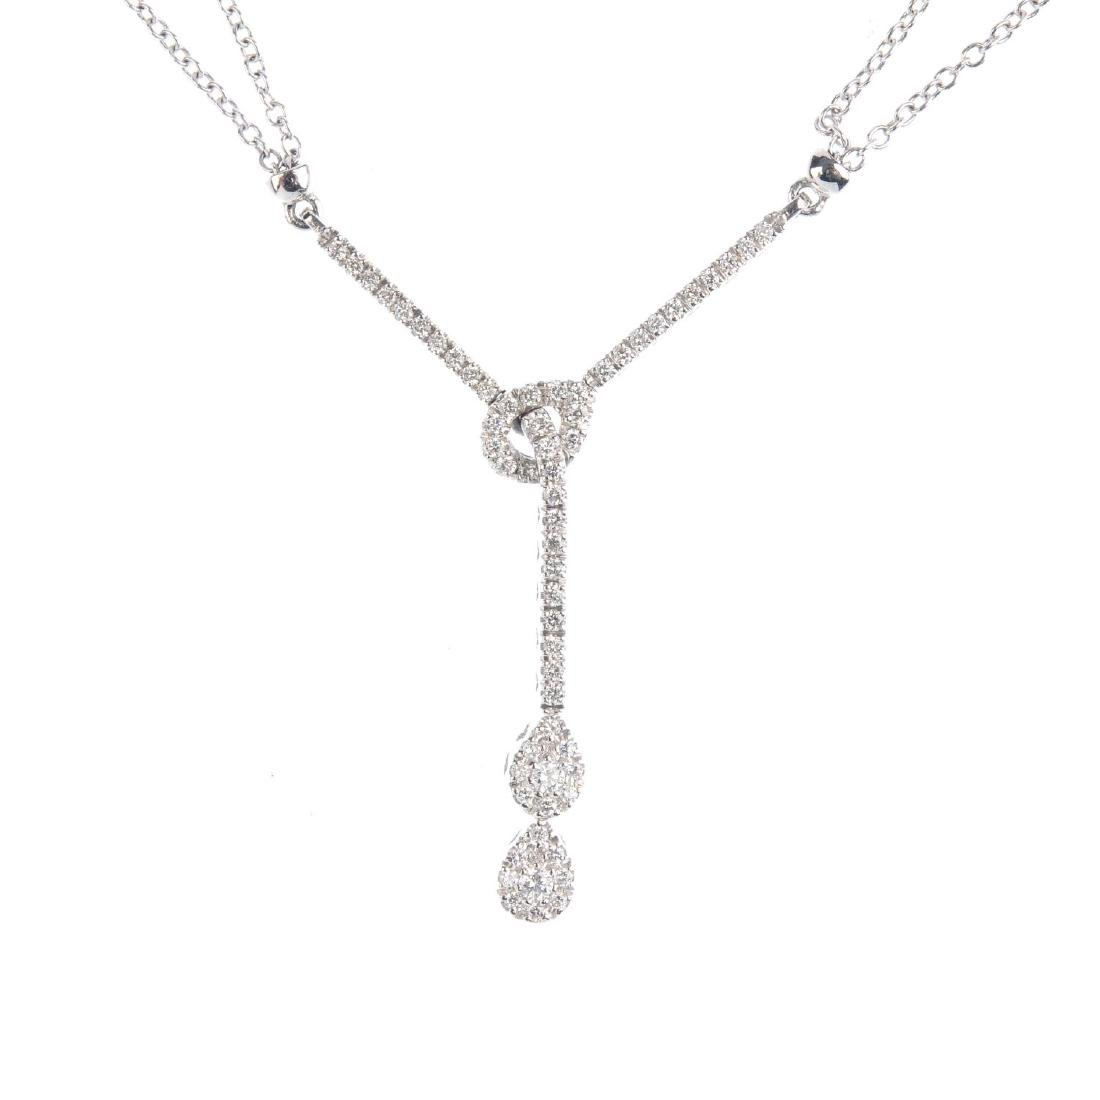 MAPPIN & WEBB - an 18ct gold diamond necklace. The